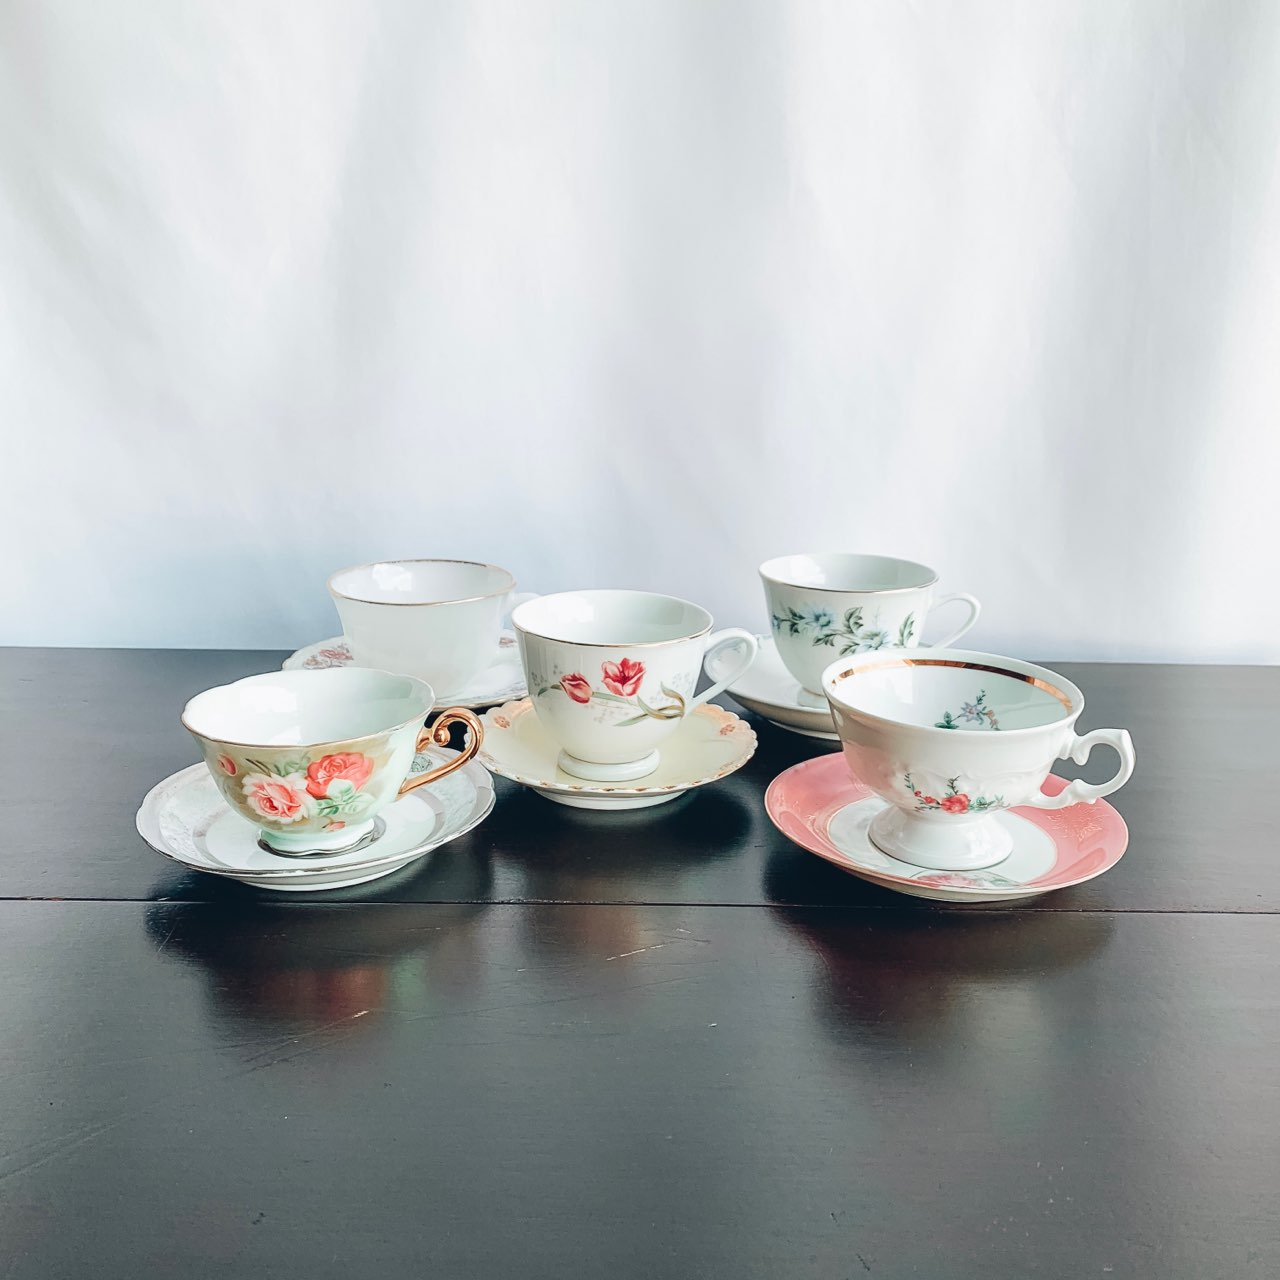 Tea Cups and Saucer Mismatched